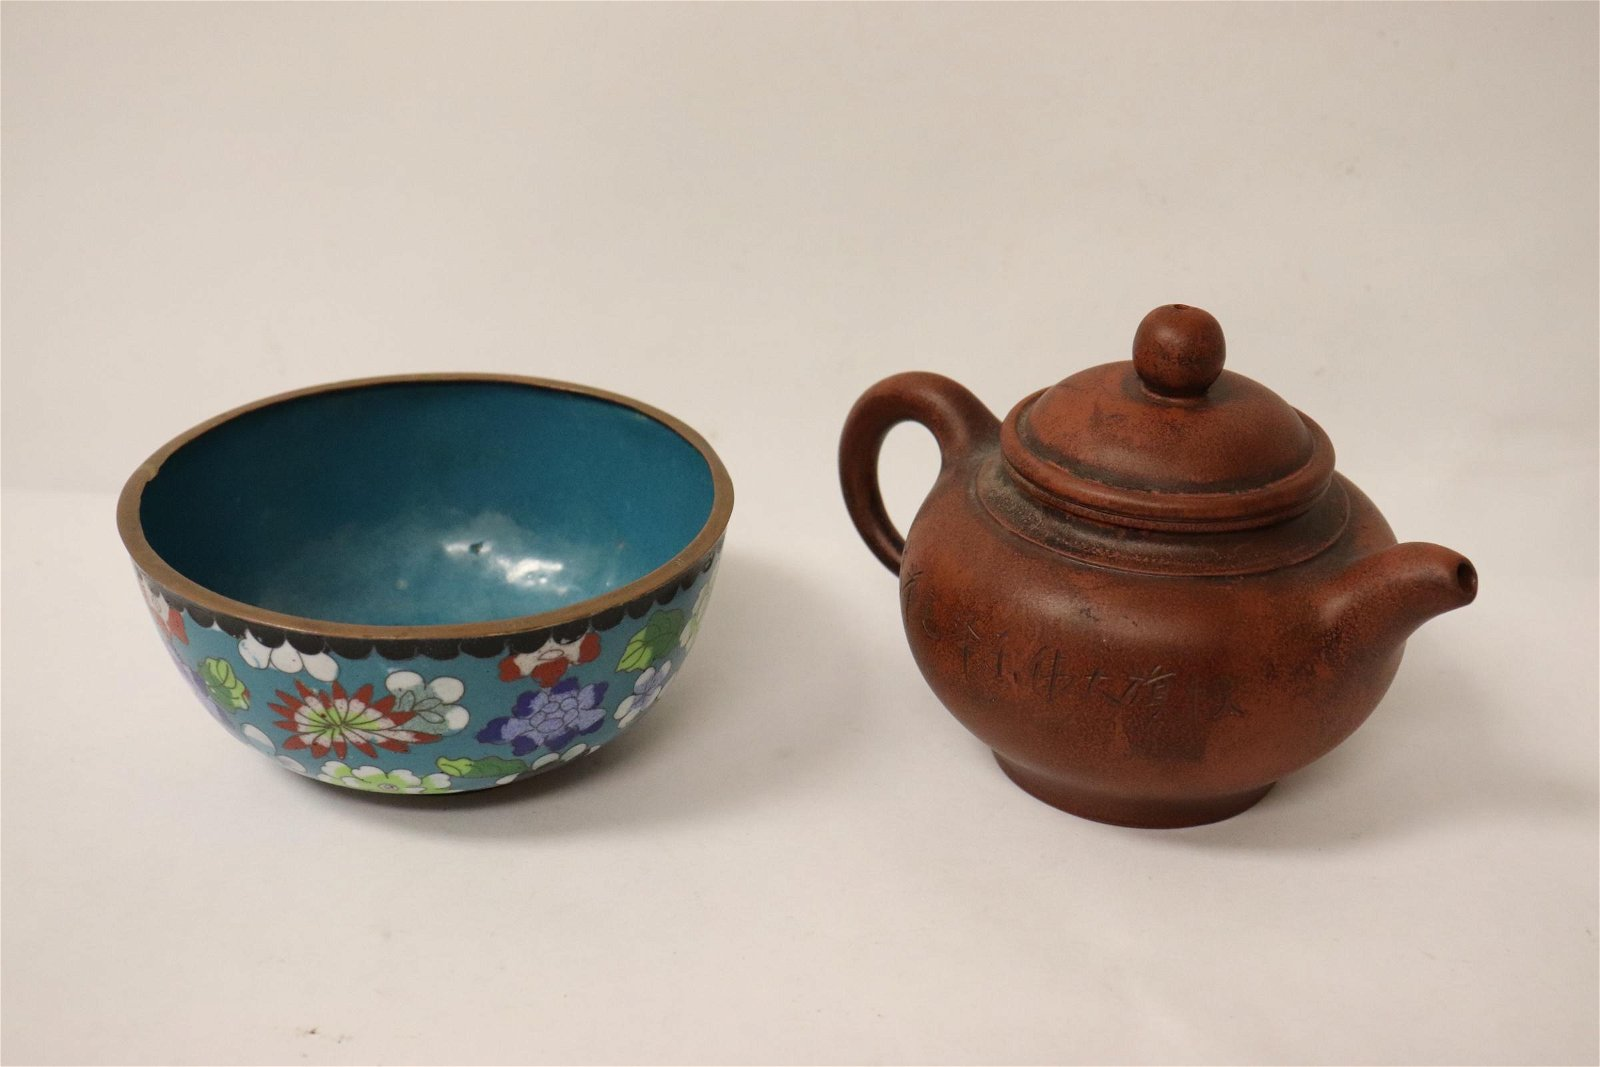 Chinese Yixing teapot and a cloisonne bowl